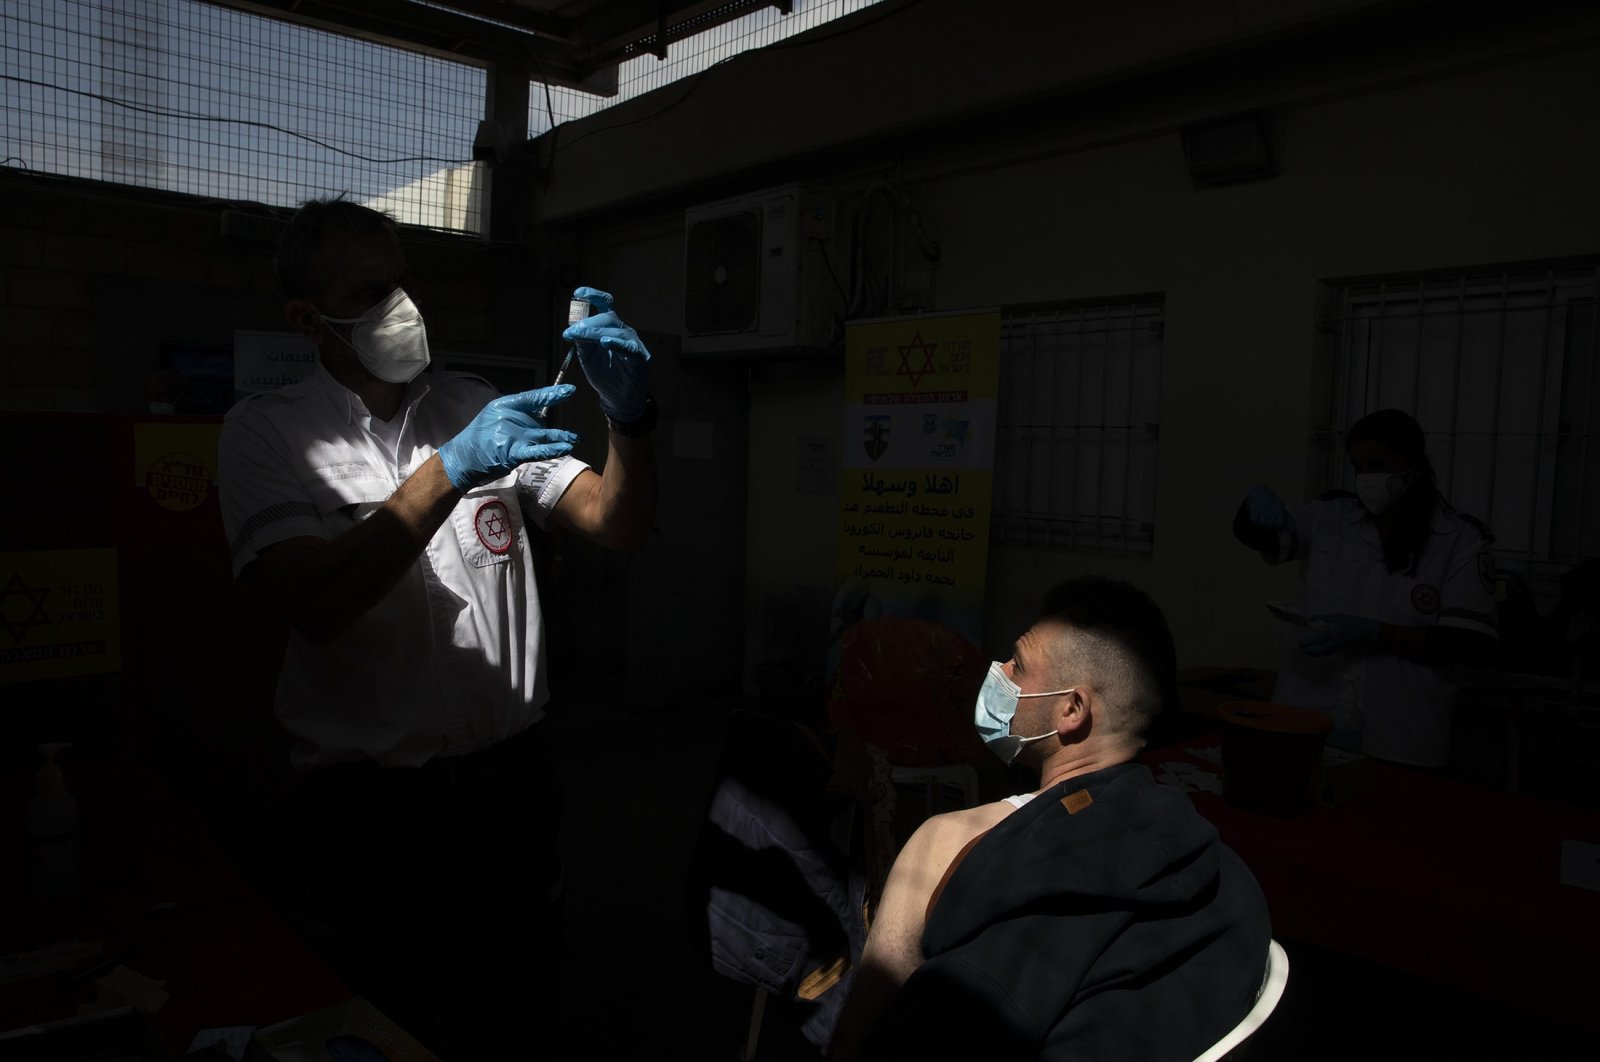 In this March 8, 2021, file photo, a Palestinian worker who works in Israel receives a Moderna COVID-19 vaccine at the Tarkumiya crossing between the West Bank and Israel. (AP Photo)